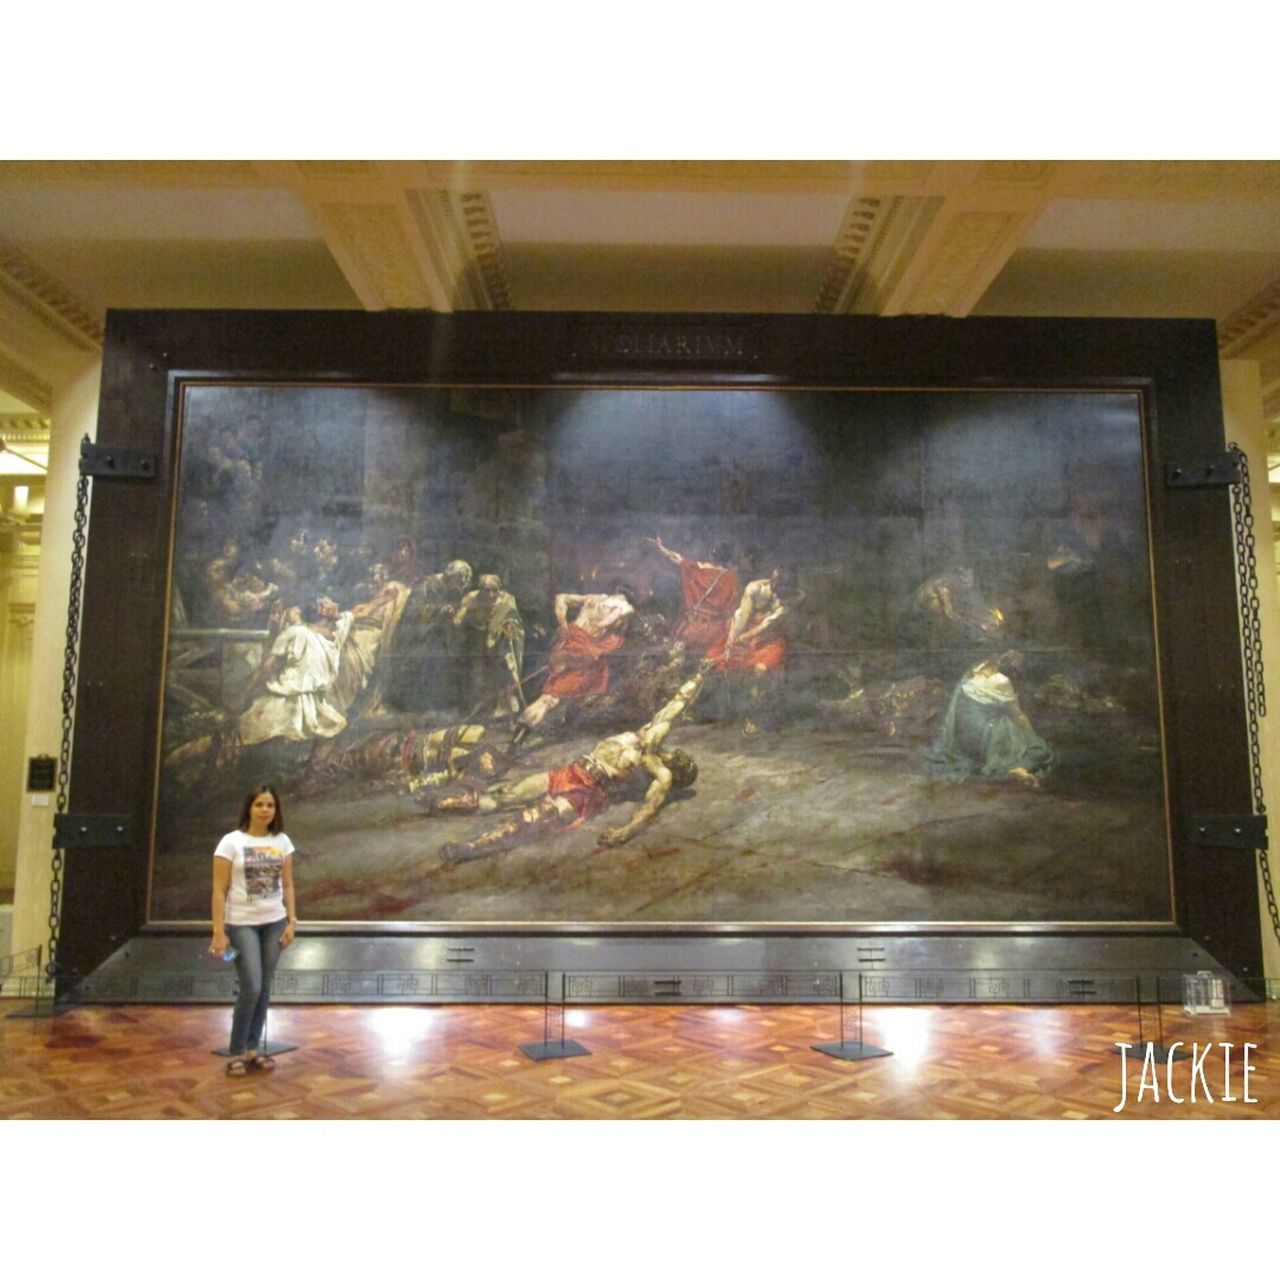 A Day At The Museum atlast very greatful to see Juna Luna's Creation. The SPOLARIUM.... Painting ArtWork Taking Photos Hello World SiningPilipino Iampilipino Treasure Taking Pictures